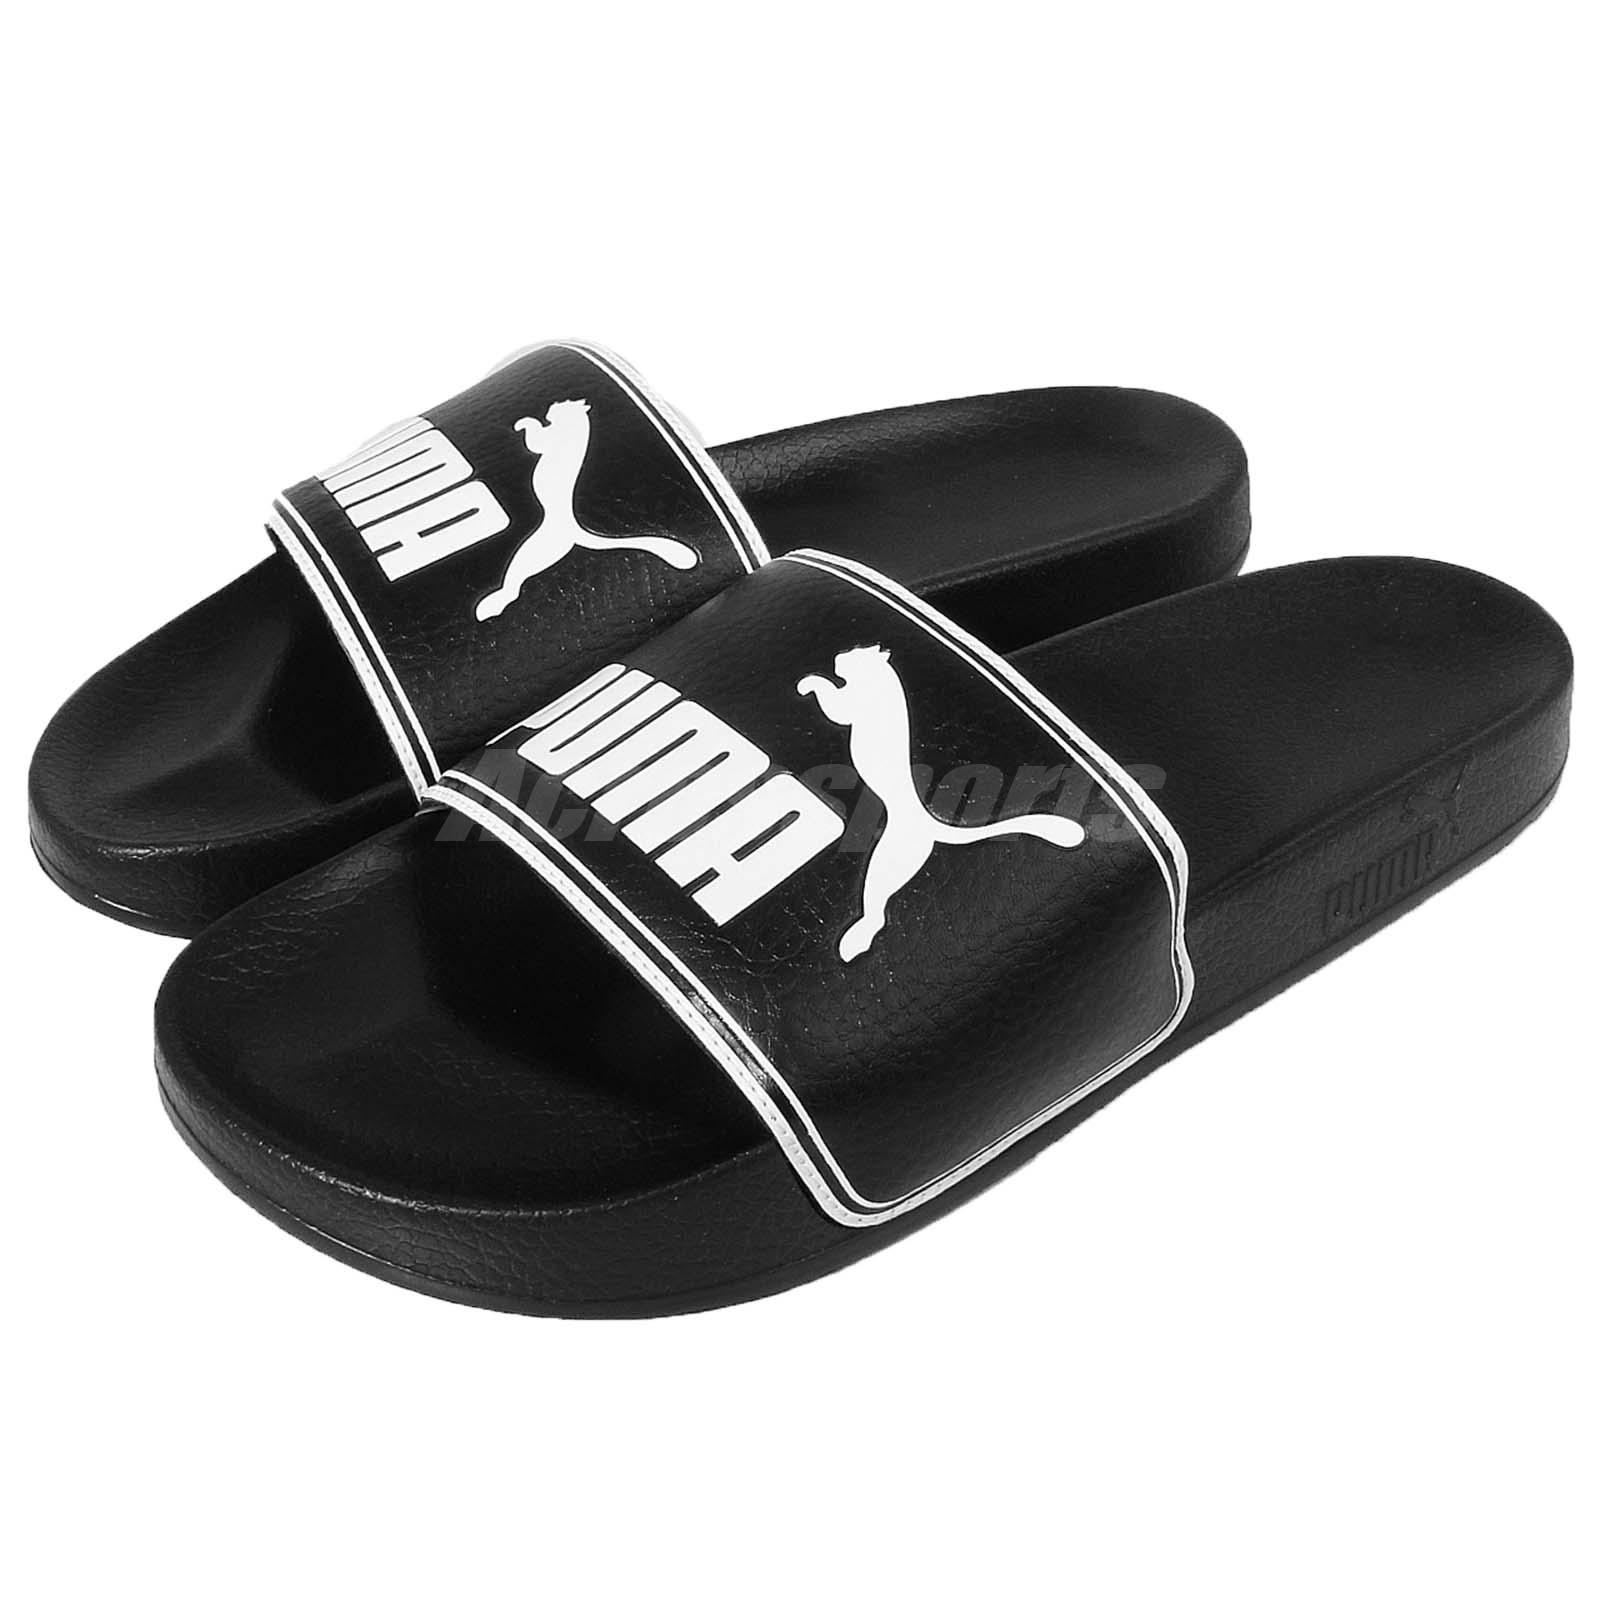 a42810d8213a Details about Puma Leadcat Black White Big Logo Men Sandals Slides Slippers  360263-01